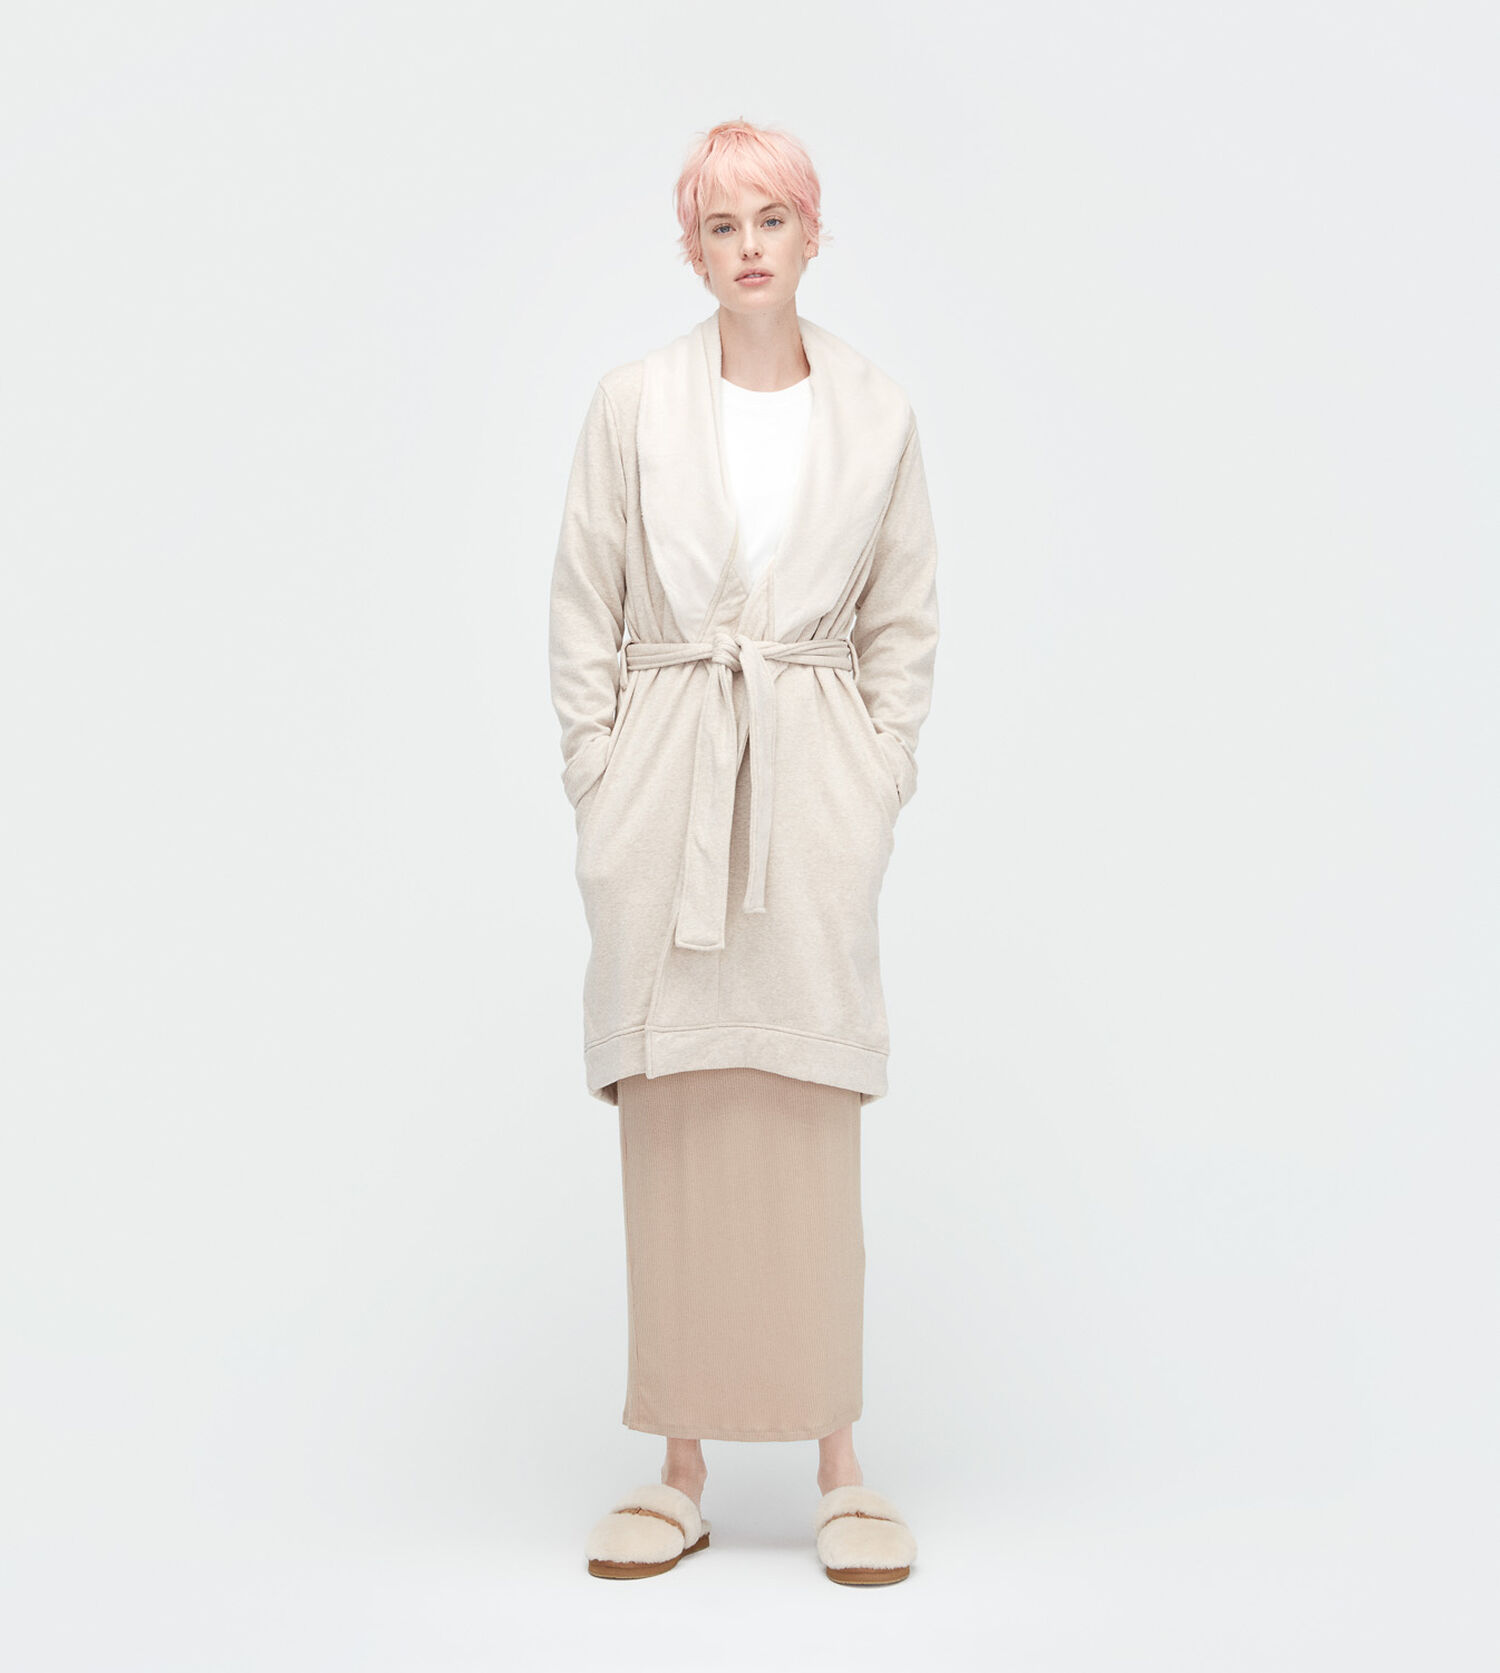 c3c24a4cb0 Zoom Blanche II Robe - Image 3 of 4